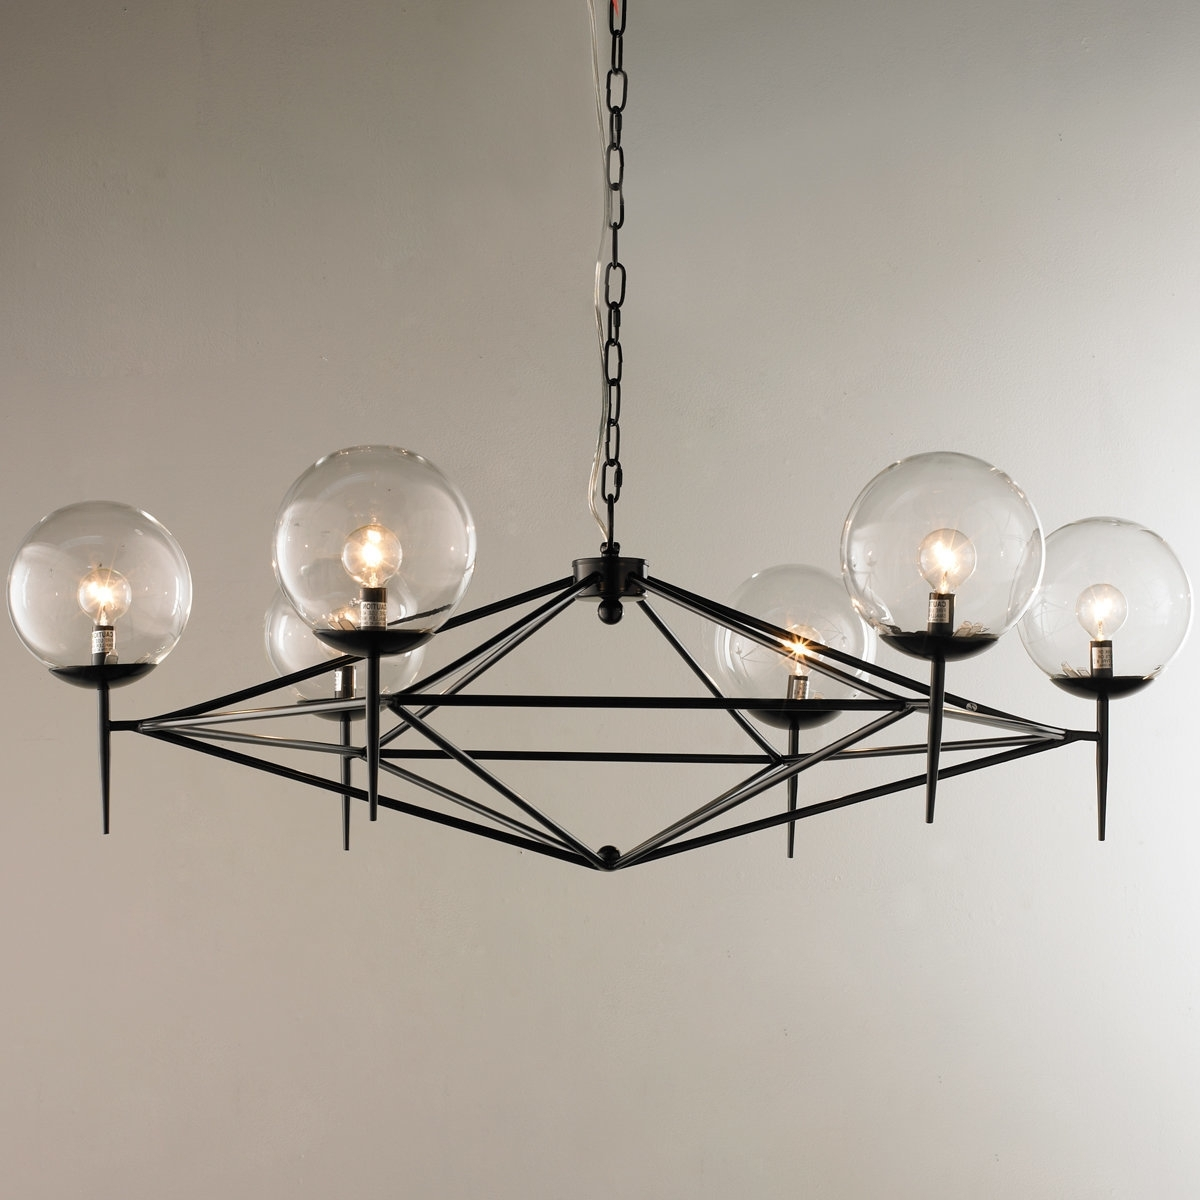 Preferred Contemporary Black Chandelier Inside Home Design : Delightful Modern Black Chandelier 41Hxrfju32L Sl (View 14 of 20)